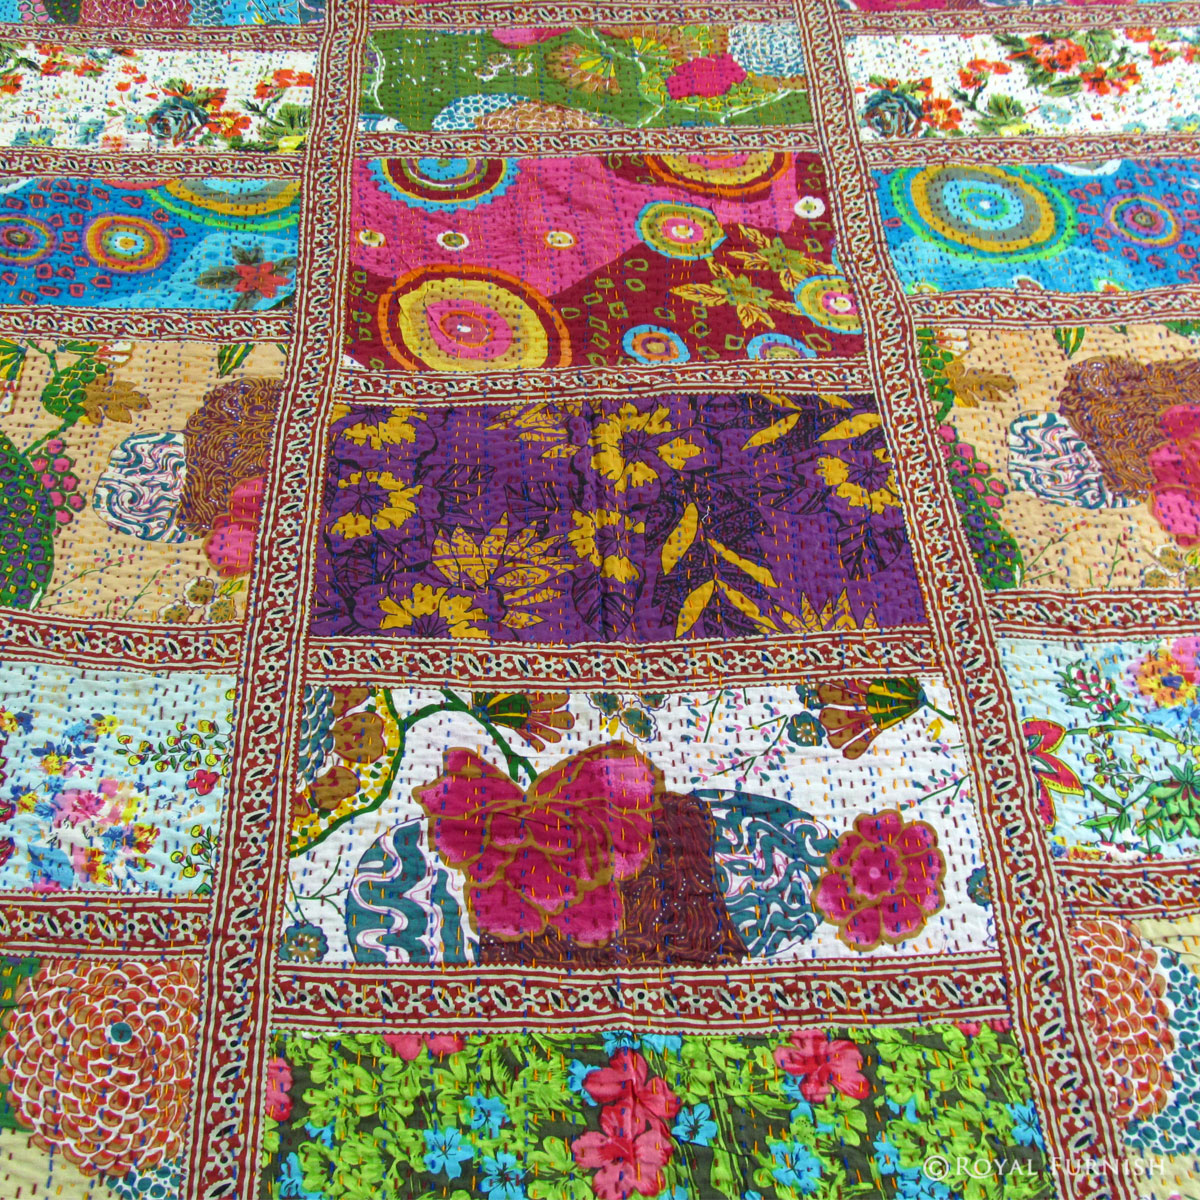 Queen Size Multicolor Patchwork Kantha Quilt Blanket